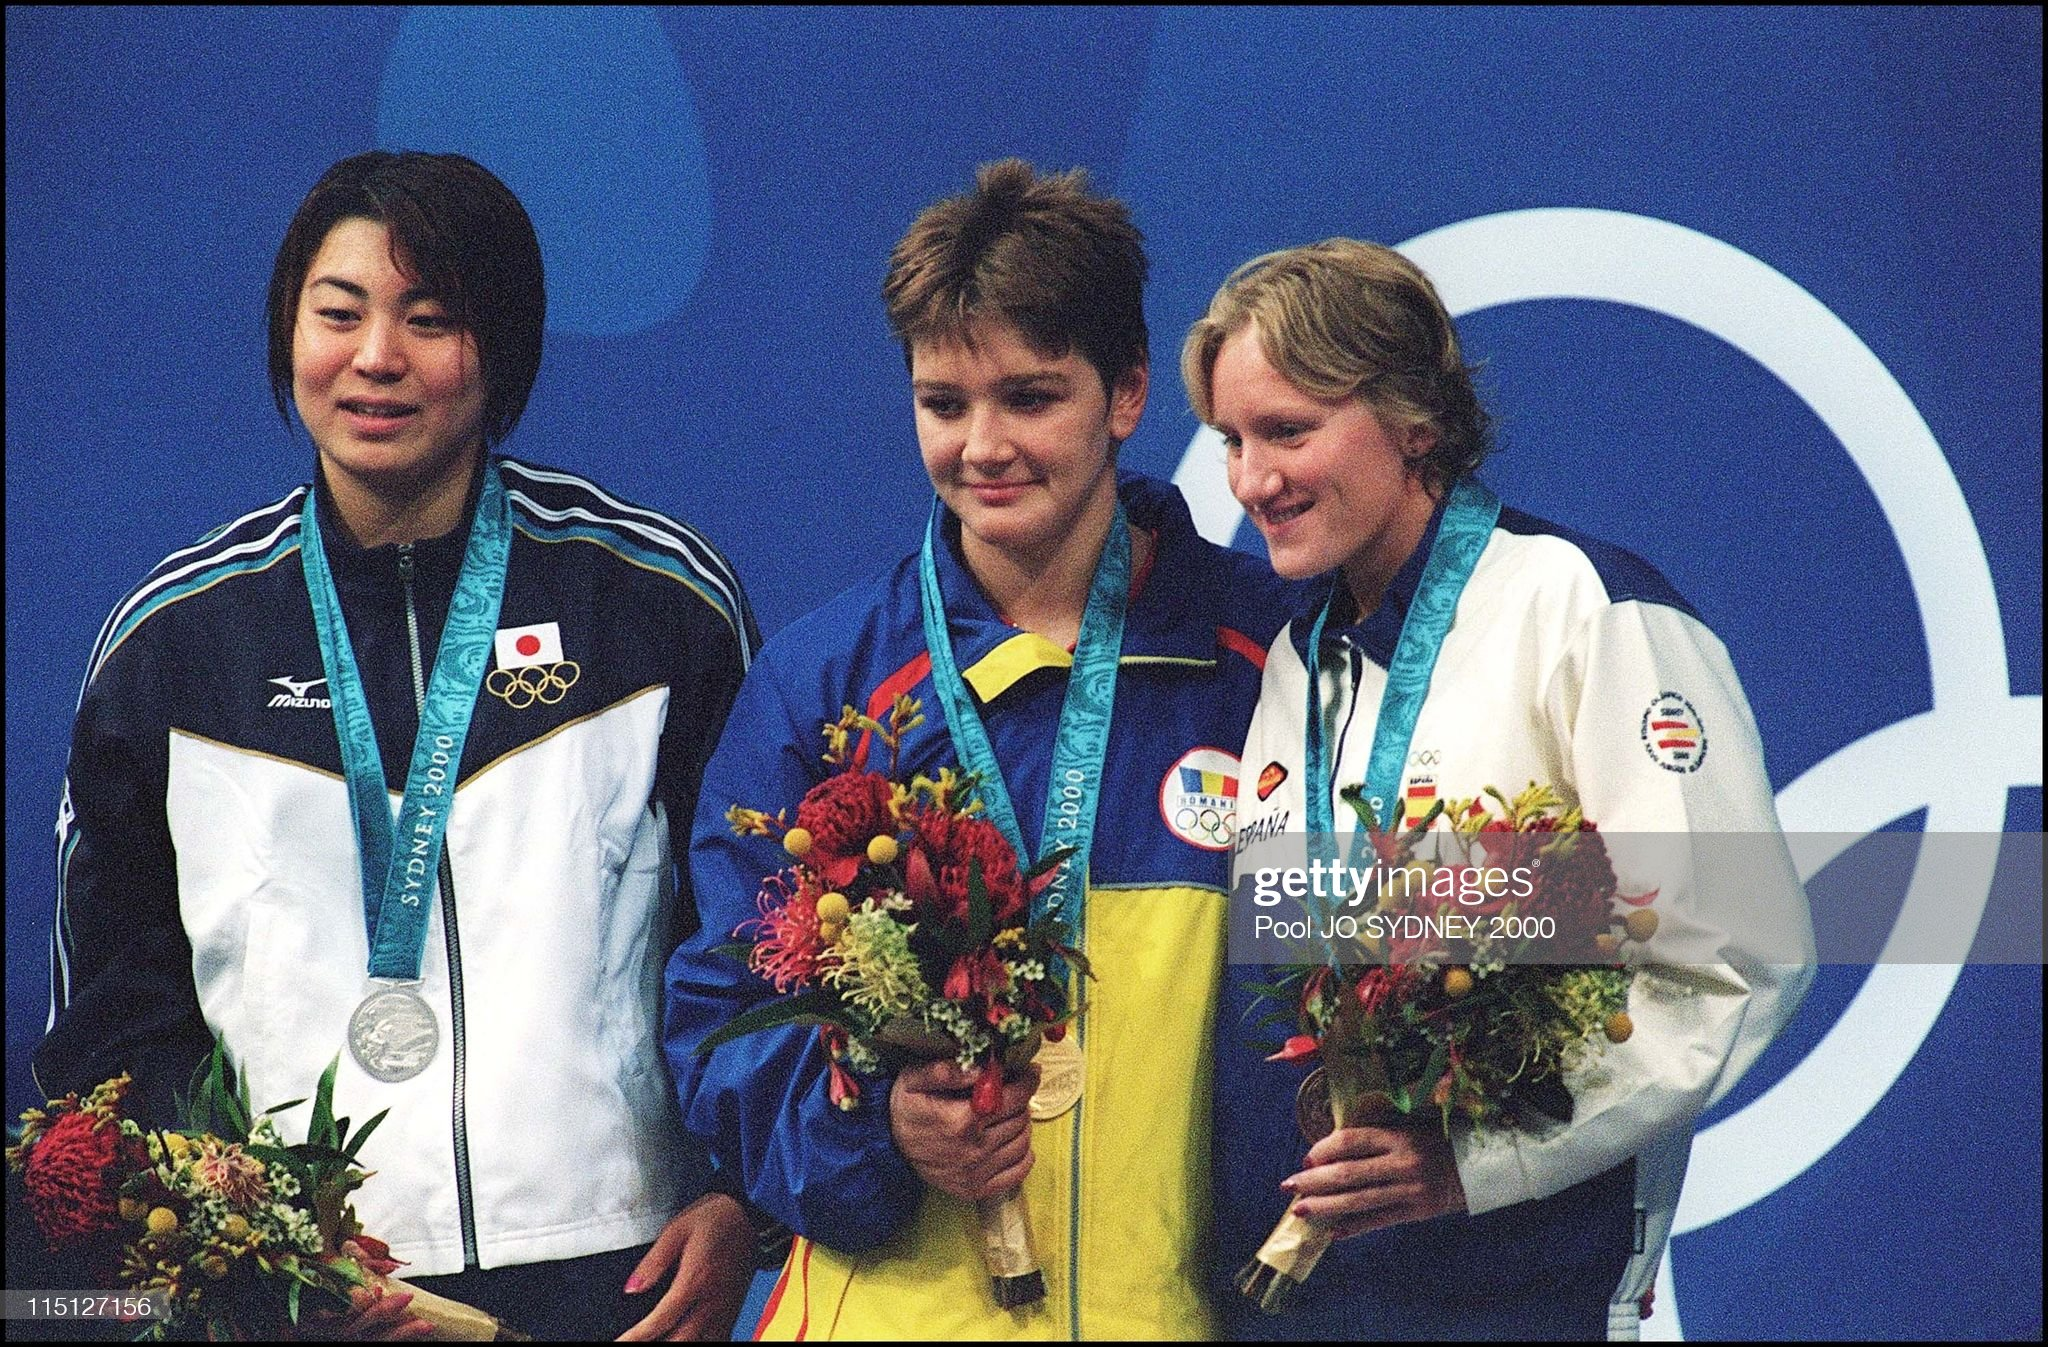 Sydney Olympic Games: Women'S 100M Backstroke Final In Sydney, Australia On September 18, 2000. : Fotografía de noticias